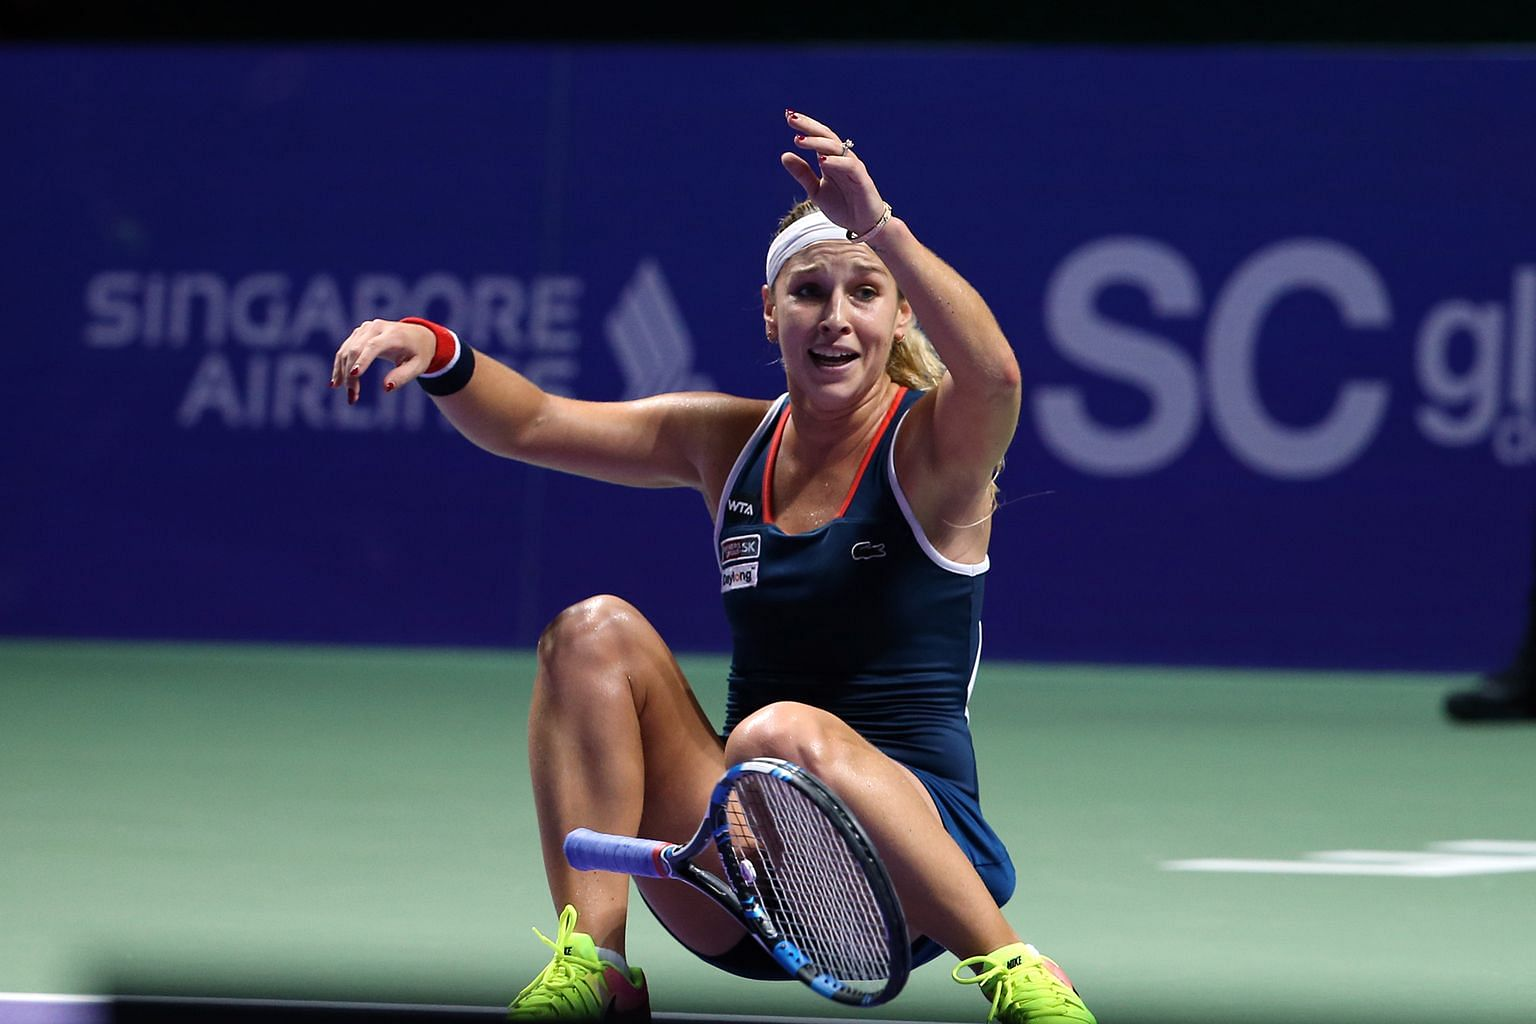 Overcome by emotion, Dominika Cibulkova collapses on the court after her unexpected but decisive 6-3, 6-4 victory against Angelique Kerber in the WTA Finals at the Singapore Indoor Stadium yesterday.